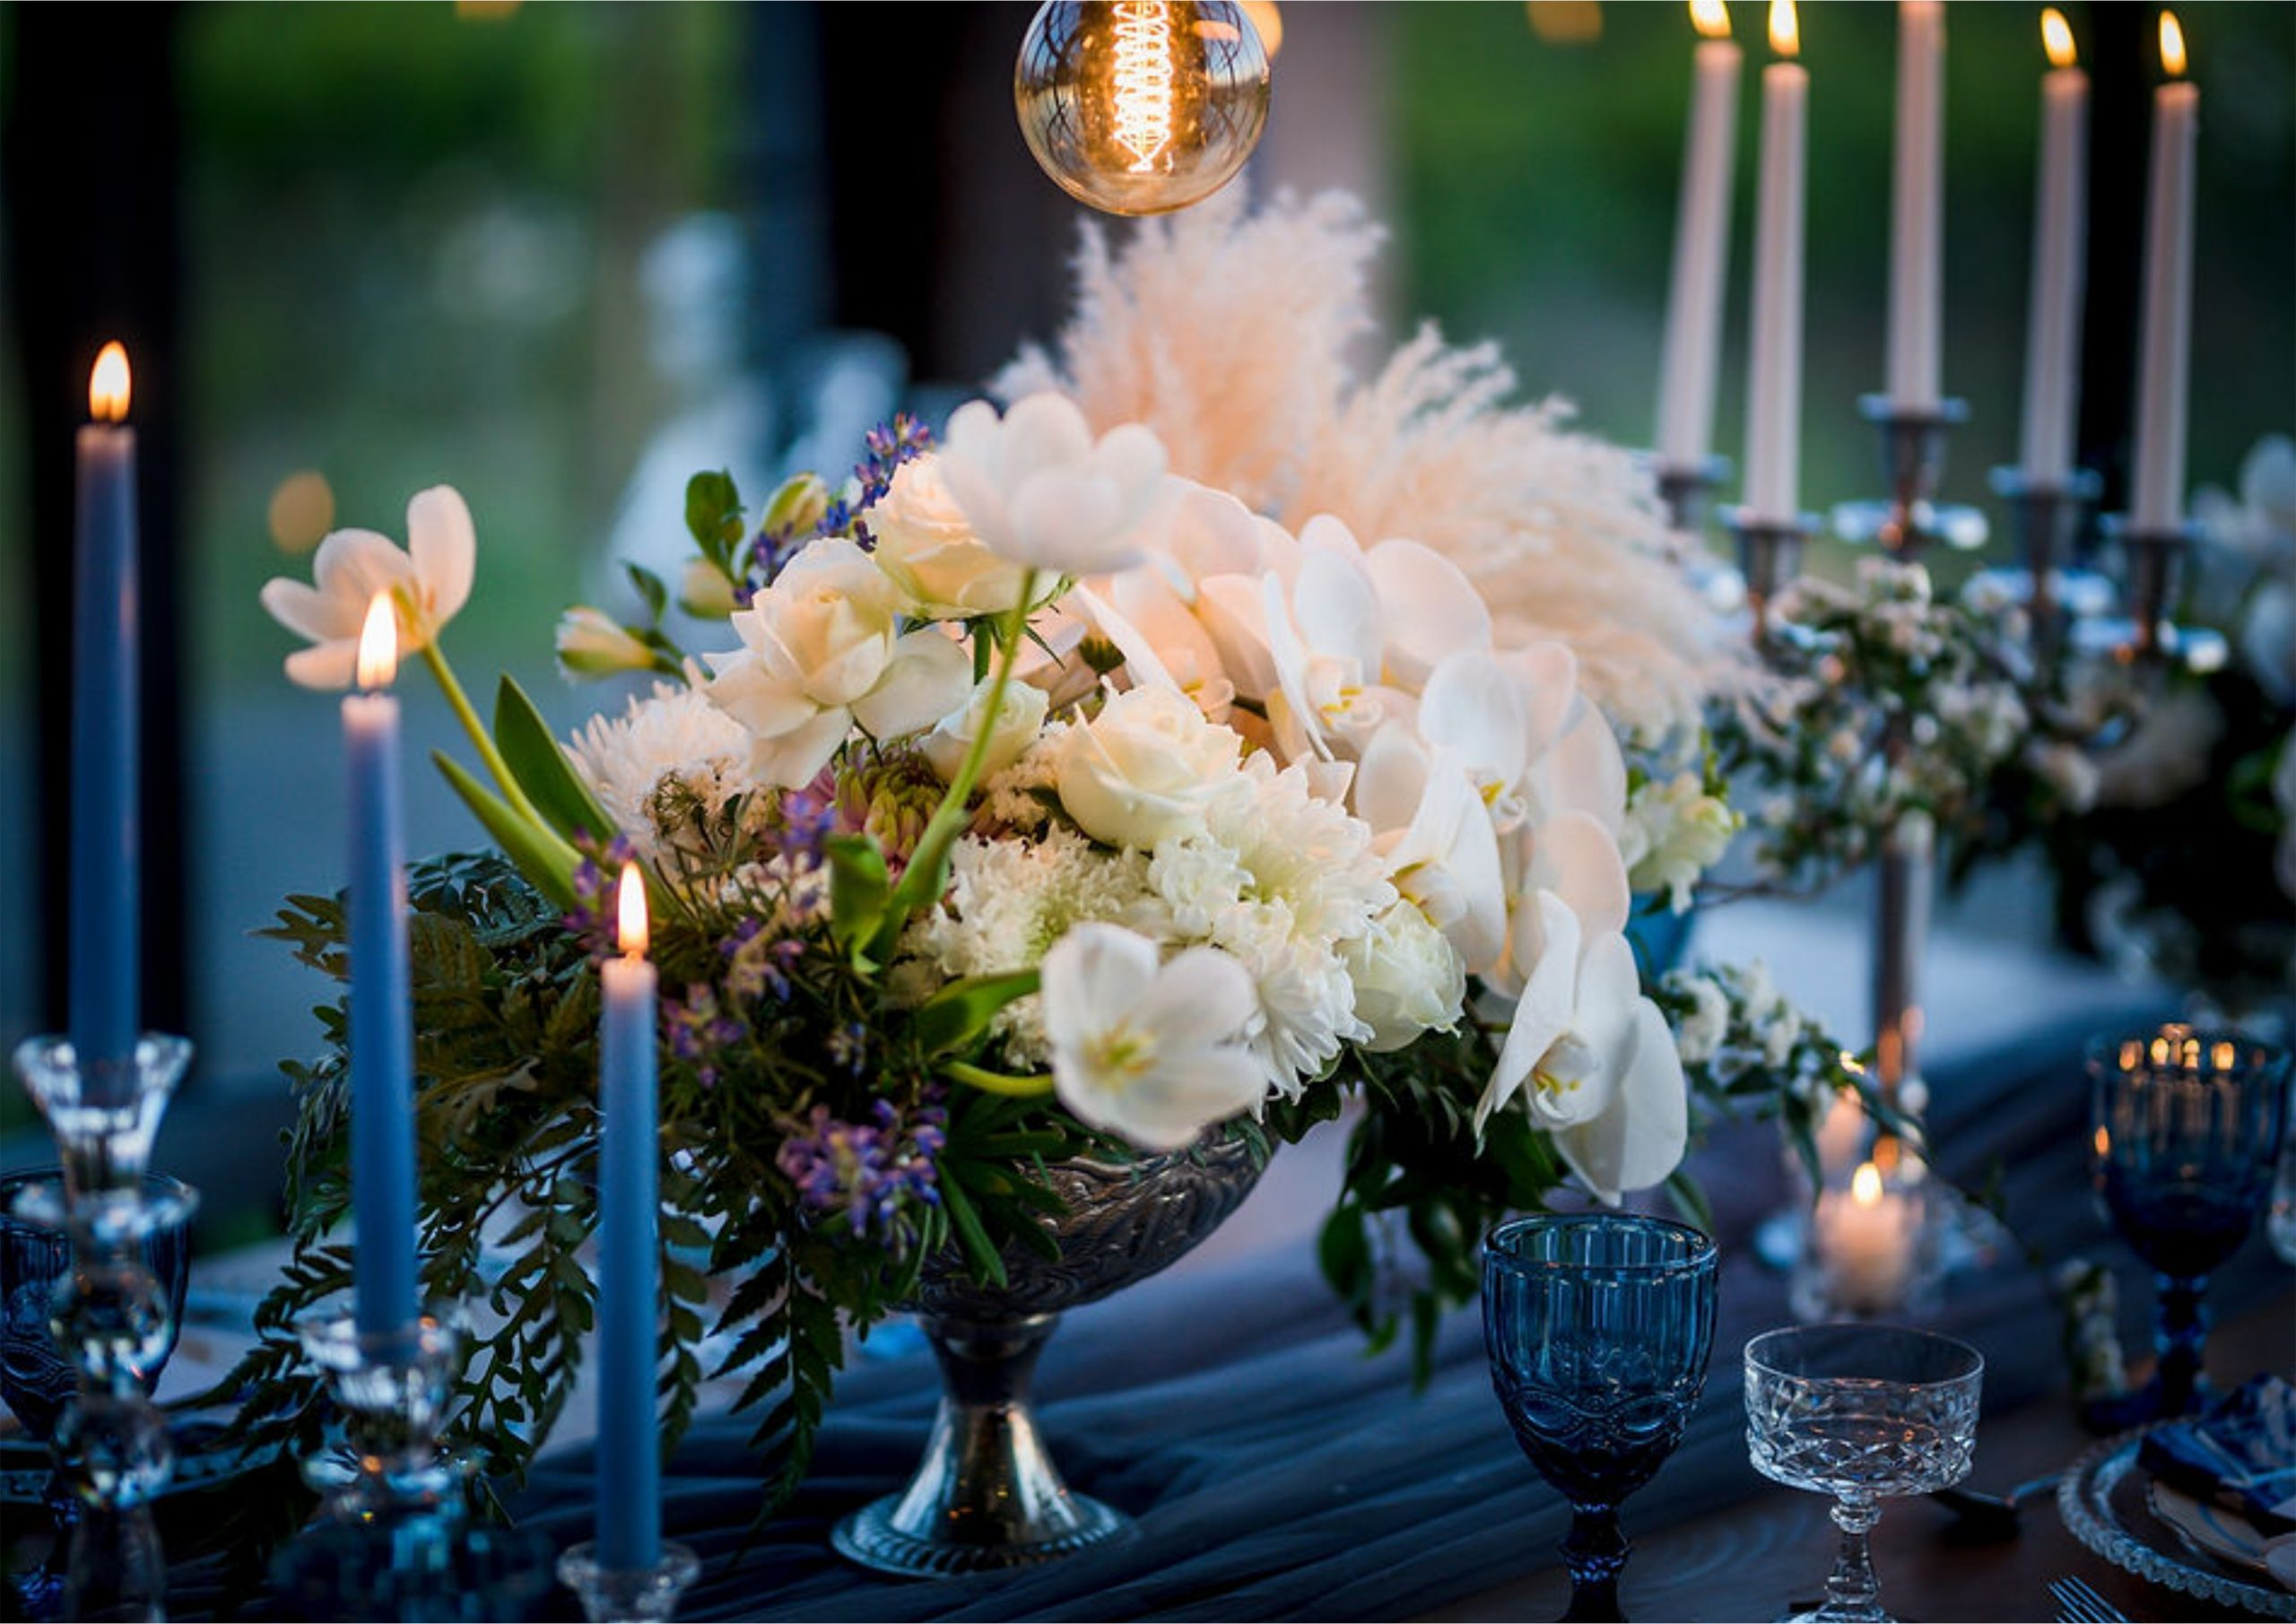 Bruidsgids Wedding Guide My Pretty Vintage Romantic Wedding Urns Candles Lighting Event Decor Photography by Gustav Klotz